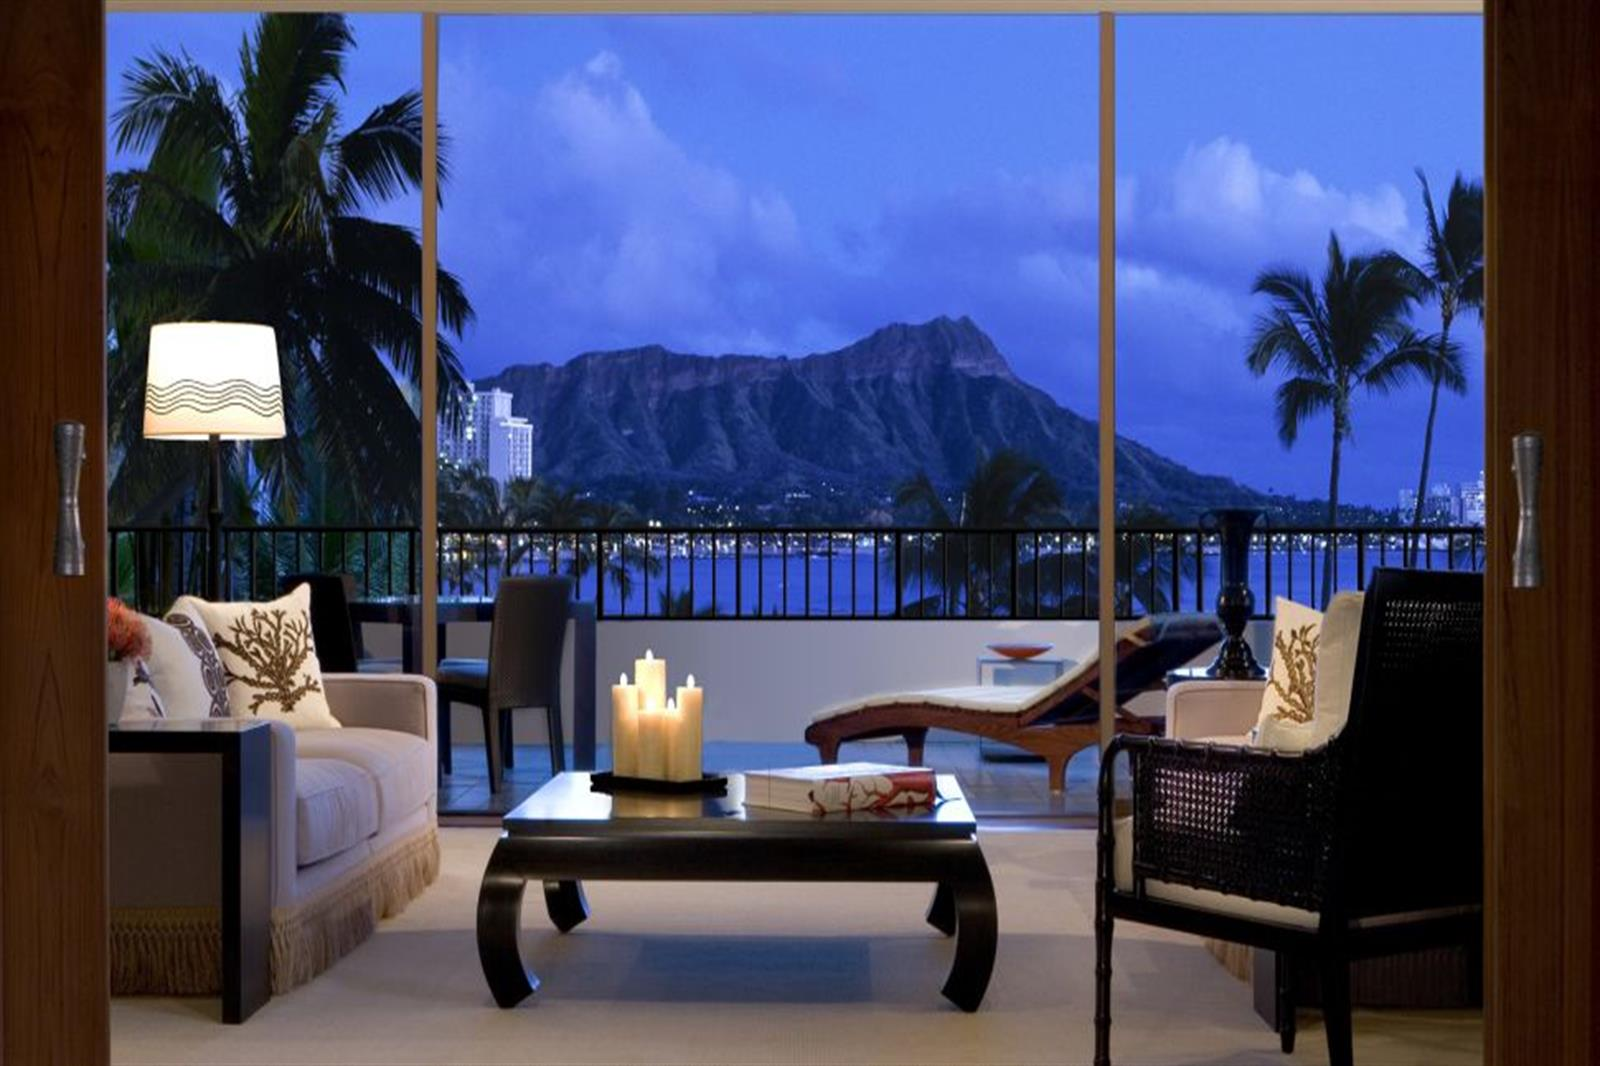 Top Luxury Hotels in America - Halekulani - Waikiki, HI - hi oahu, waikiki, halekulani suite, best hotels in hawaii Top Luxury Hotels in America Top Luxury Hotels in America for the Perfect End of Summer Getaway Halekulani Waikiki HI